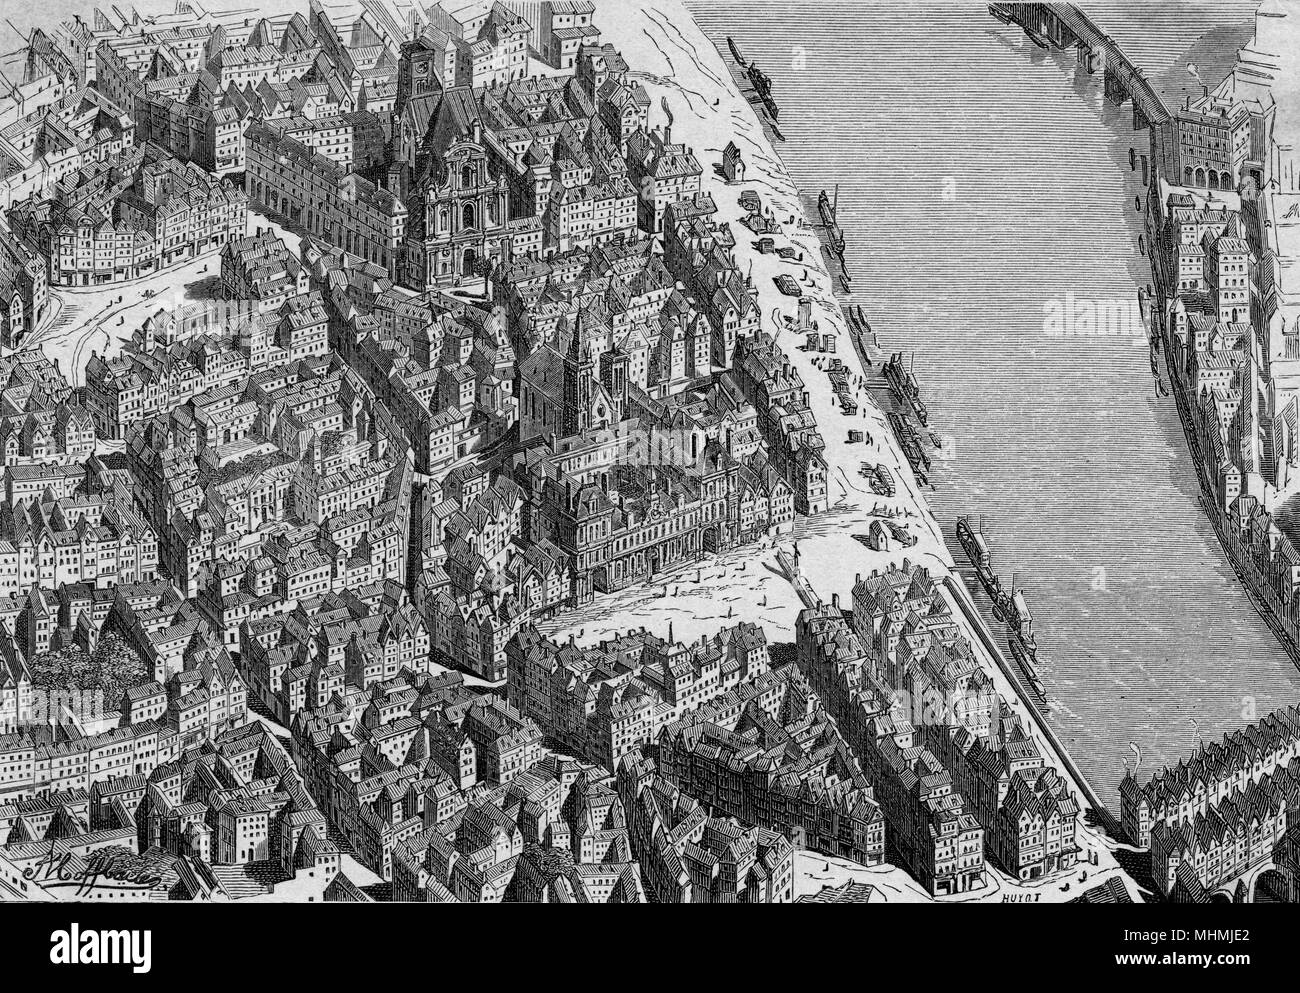 A bird's-eye view of Paris in the 18th century       Date: 18th century - Stock Image